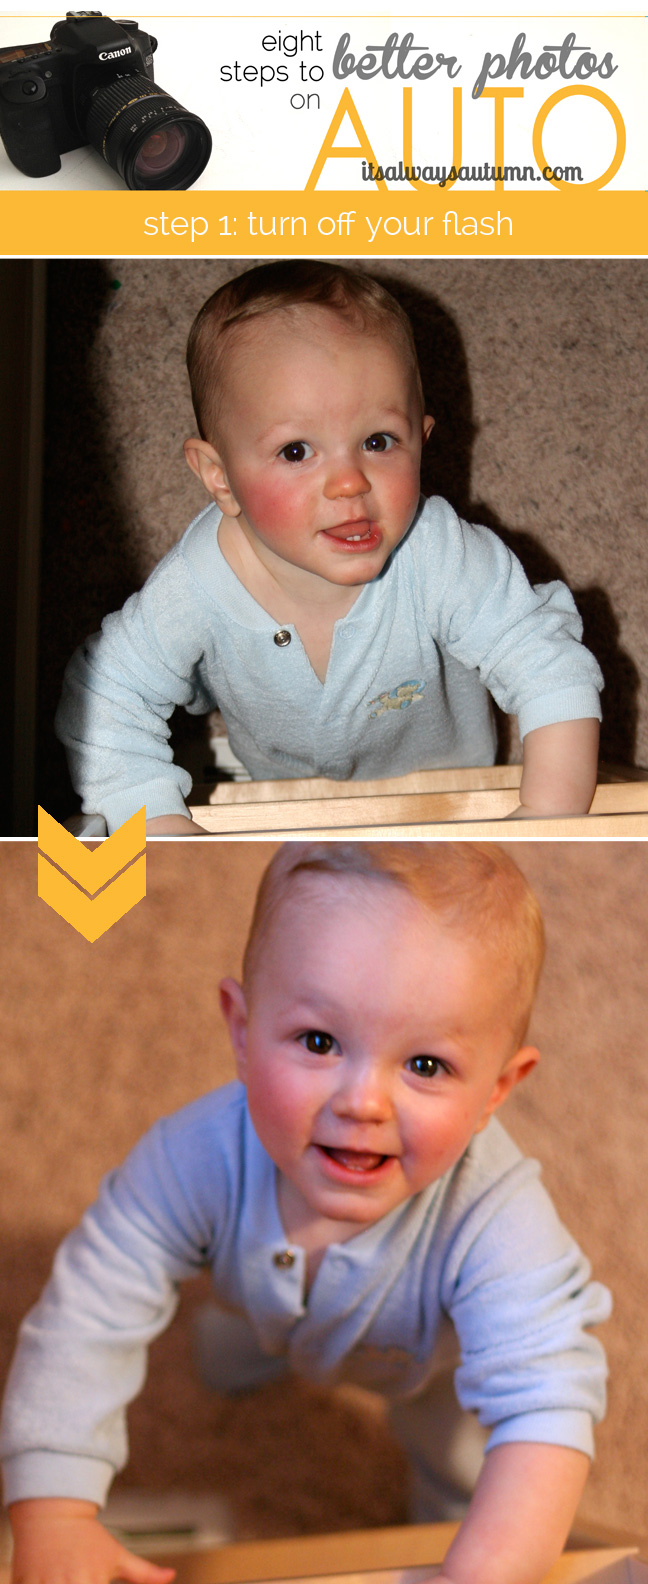 A photo of a baby boy with harsh shadows, then a well lit photo of same baby boy